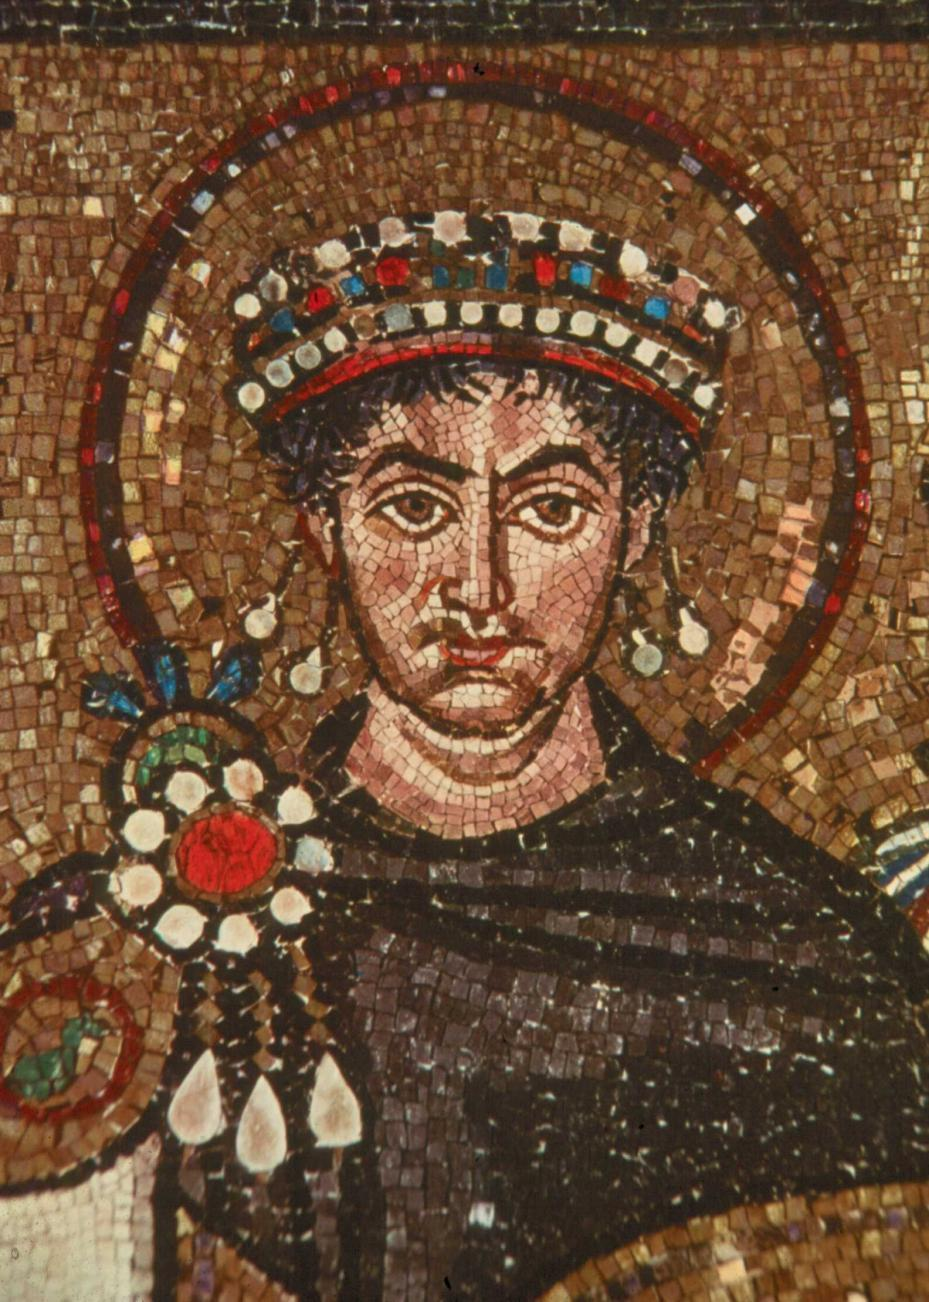 In Byzantium the emperor was the head of the Empire as well as head of the church